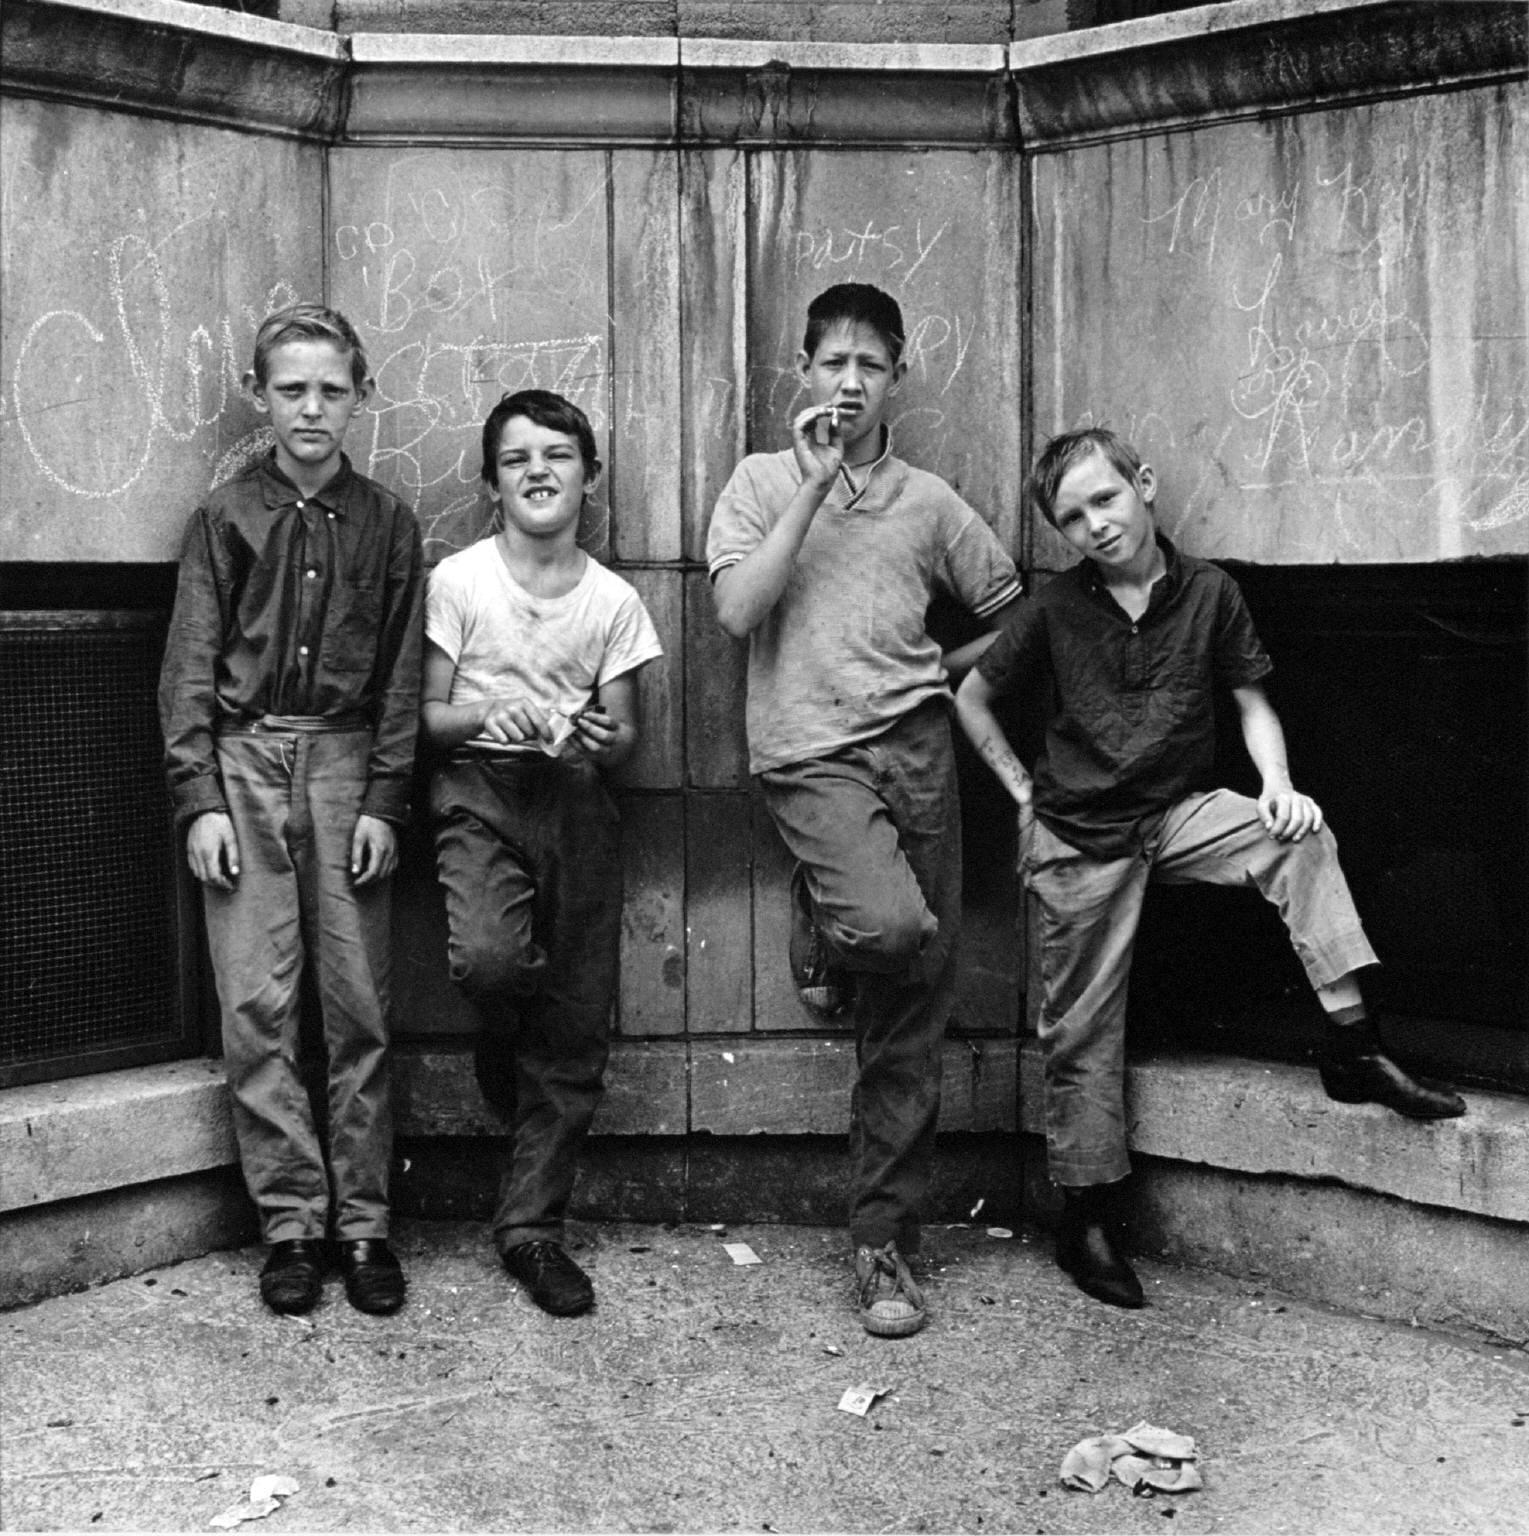 """Four boys, Uptown, Chicago"""" Pictures from the New World by Danny Lyon  --1968."""